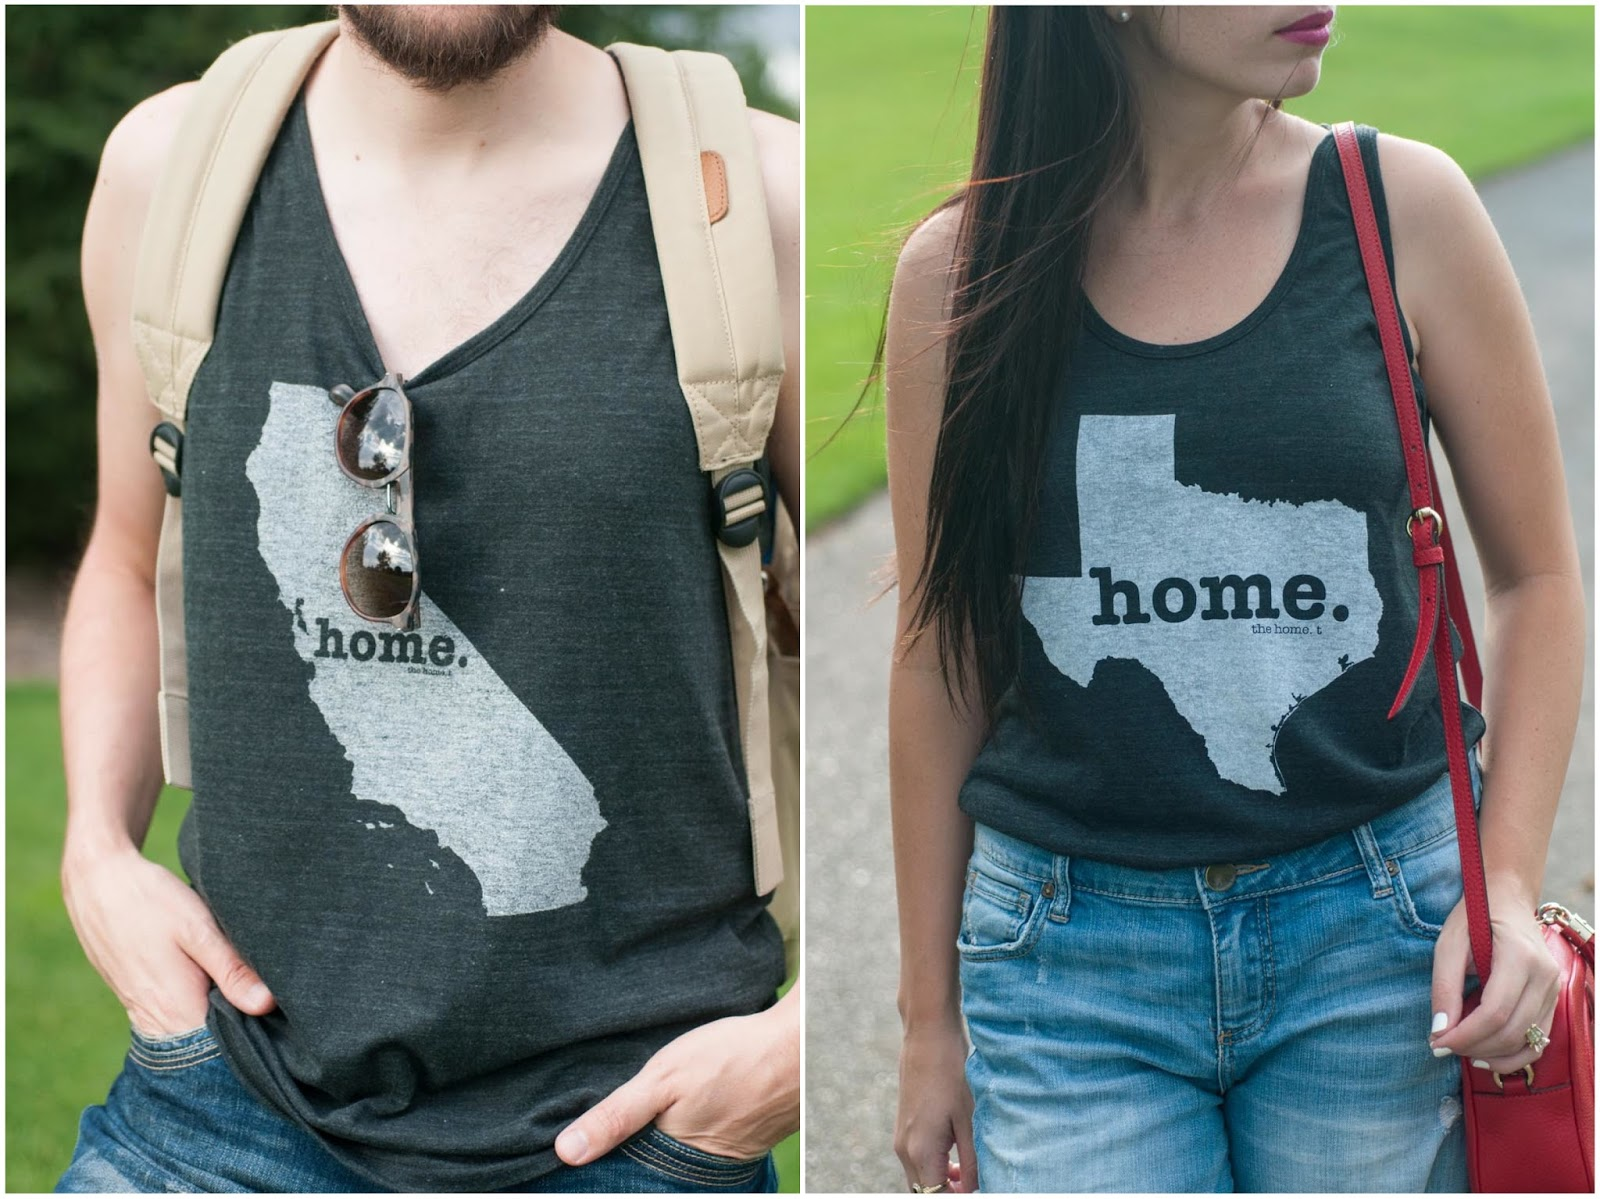 The Home Tee Tank Tops